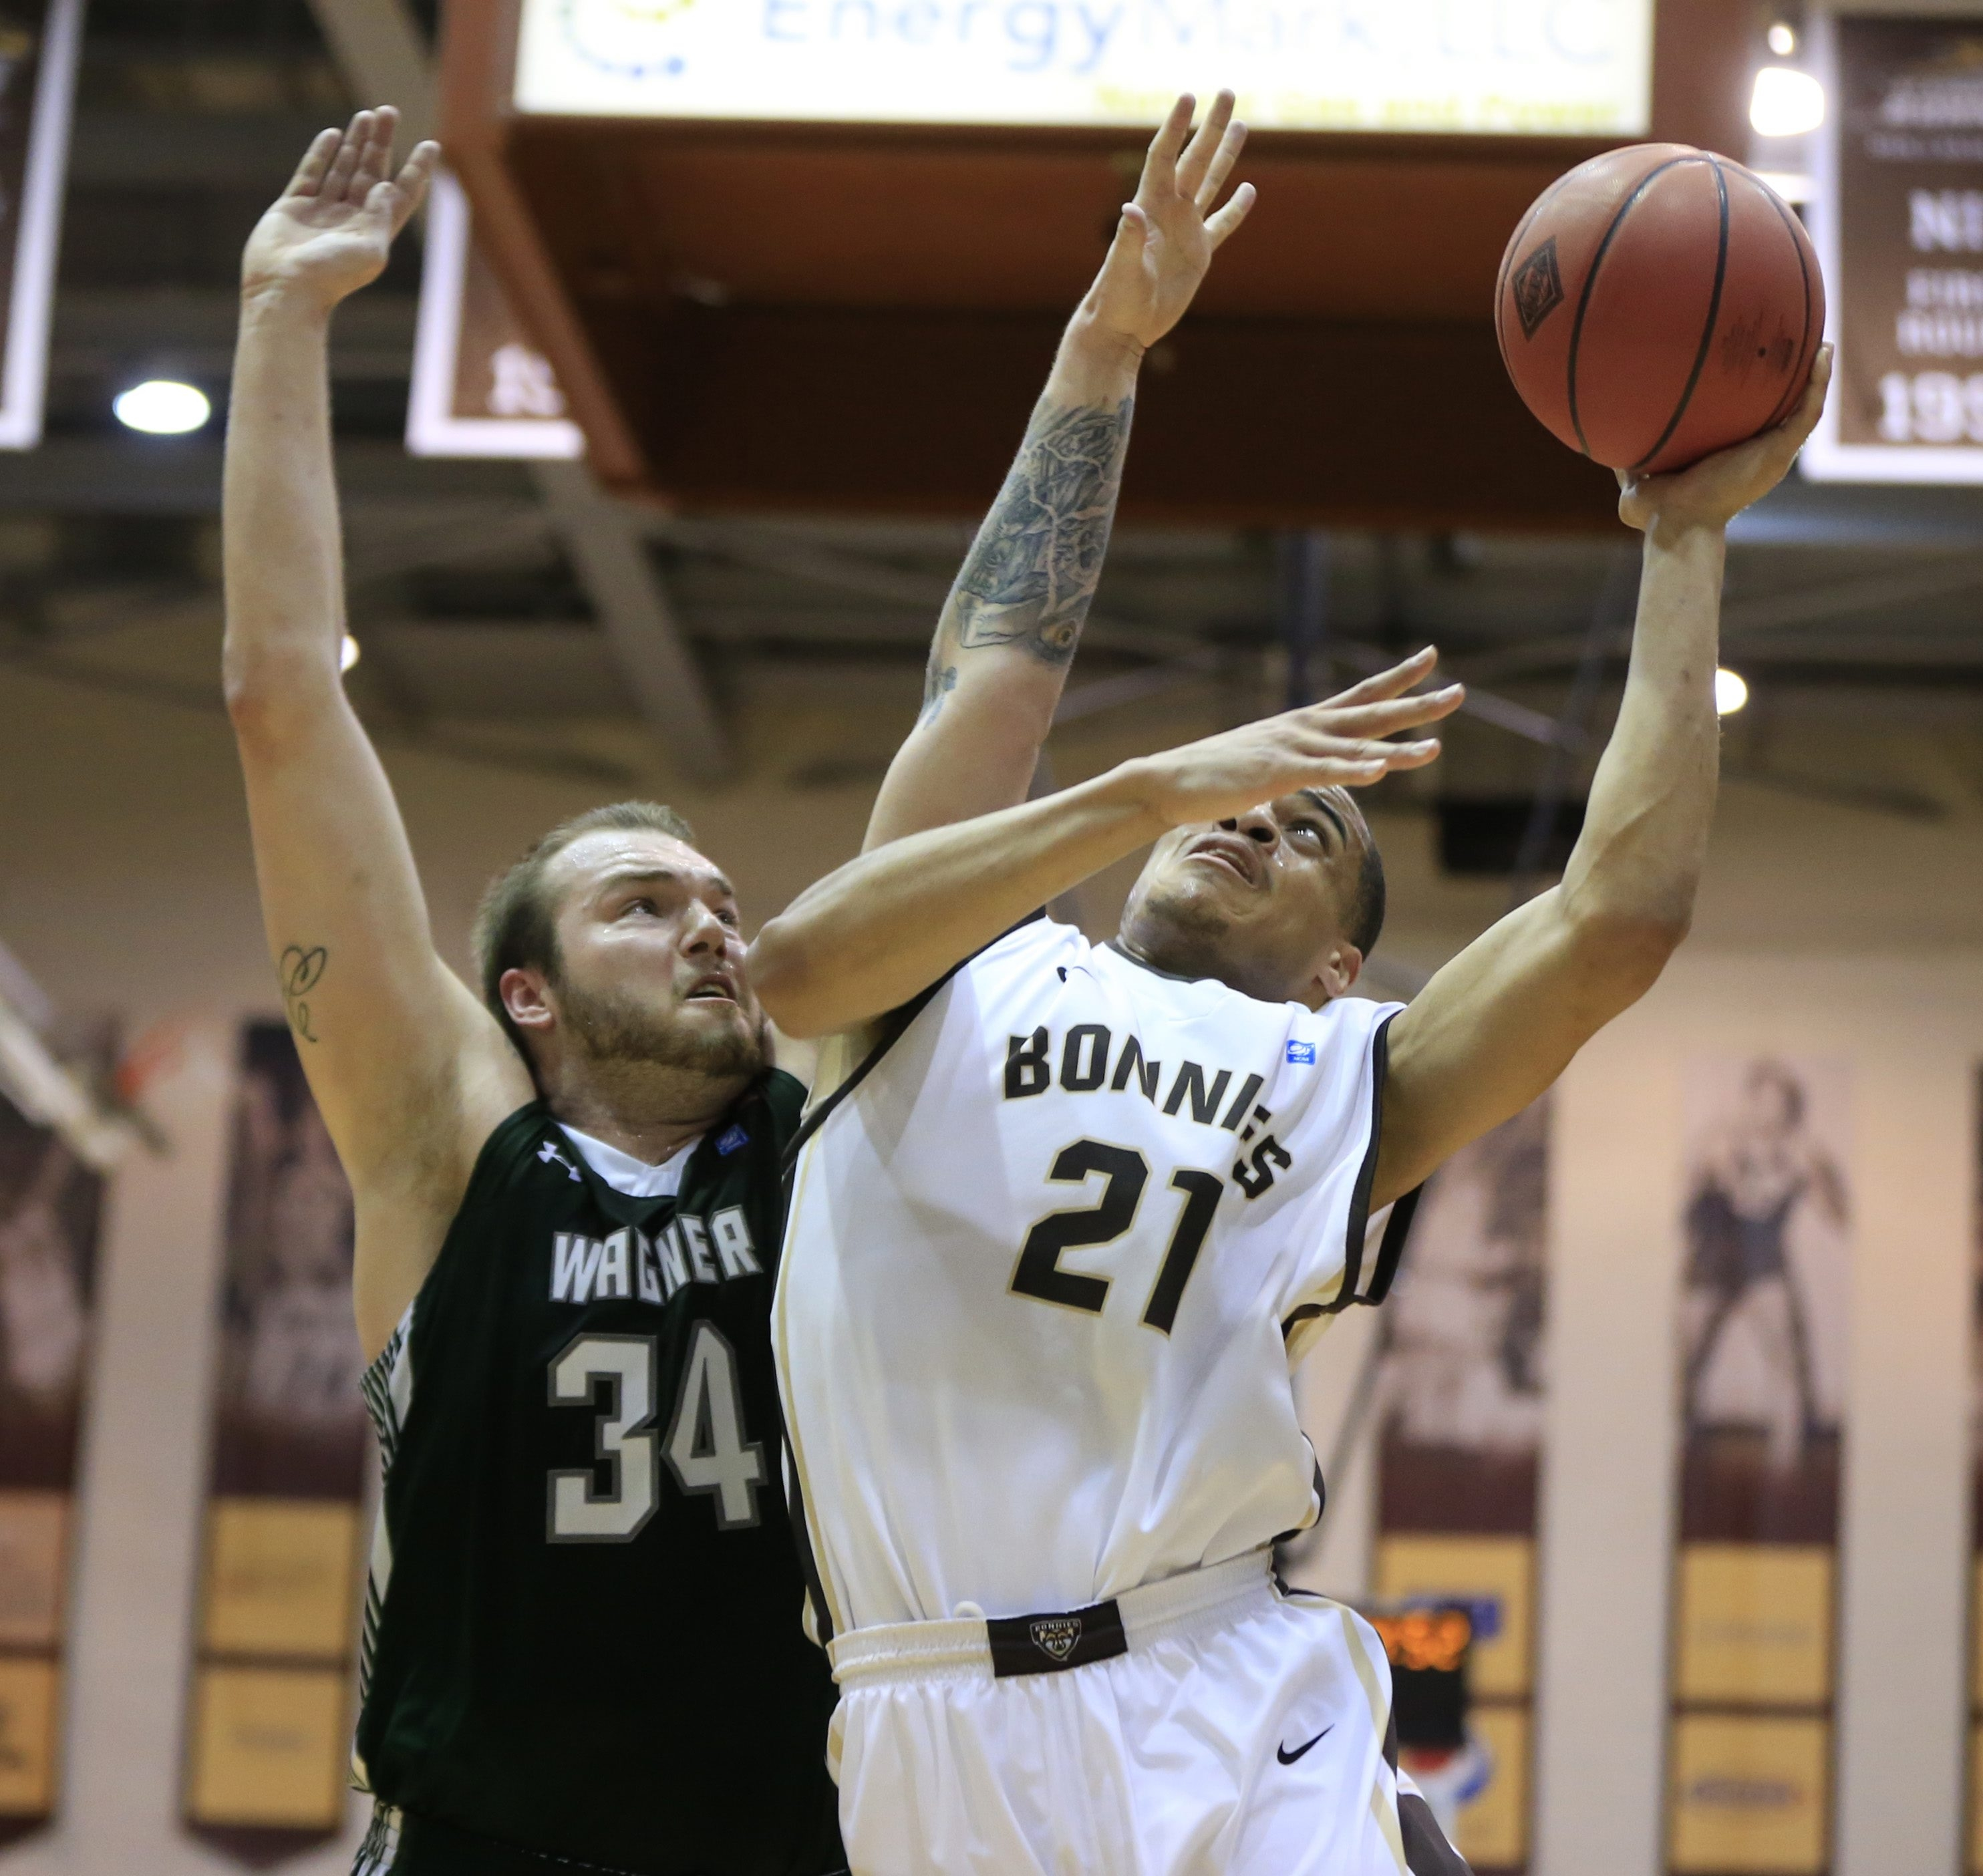 Senior Dion Wright closed out his career at St. Bonaventure in Wednesday night's loss to Wagner.